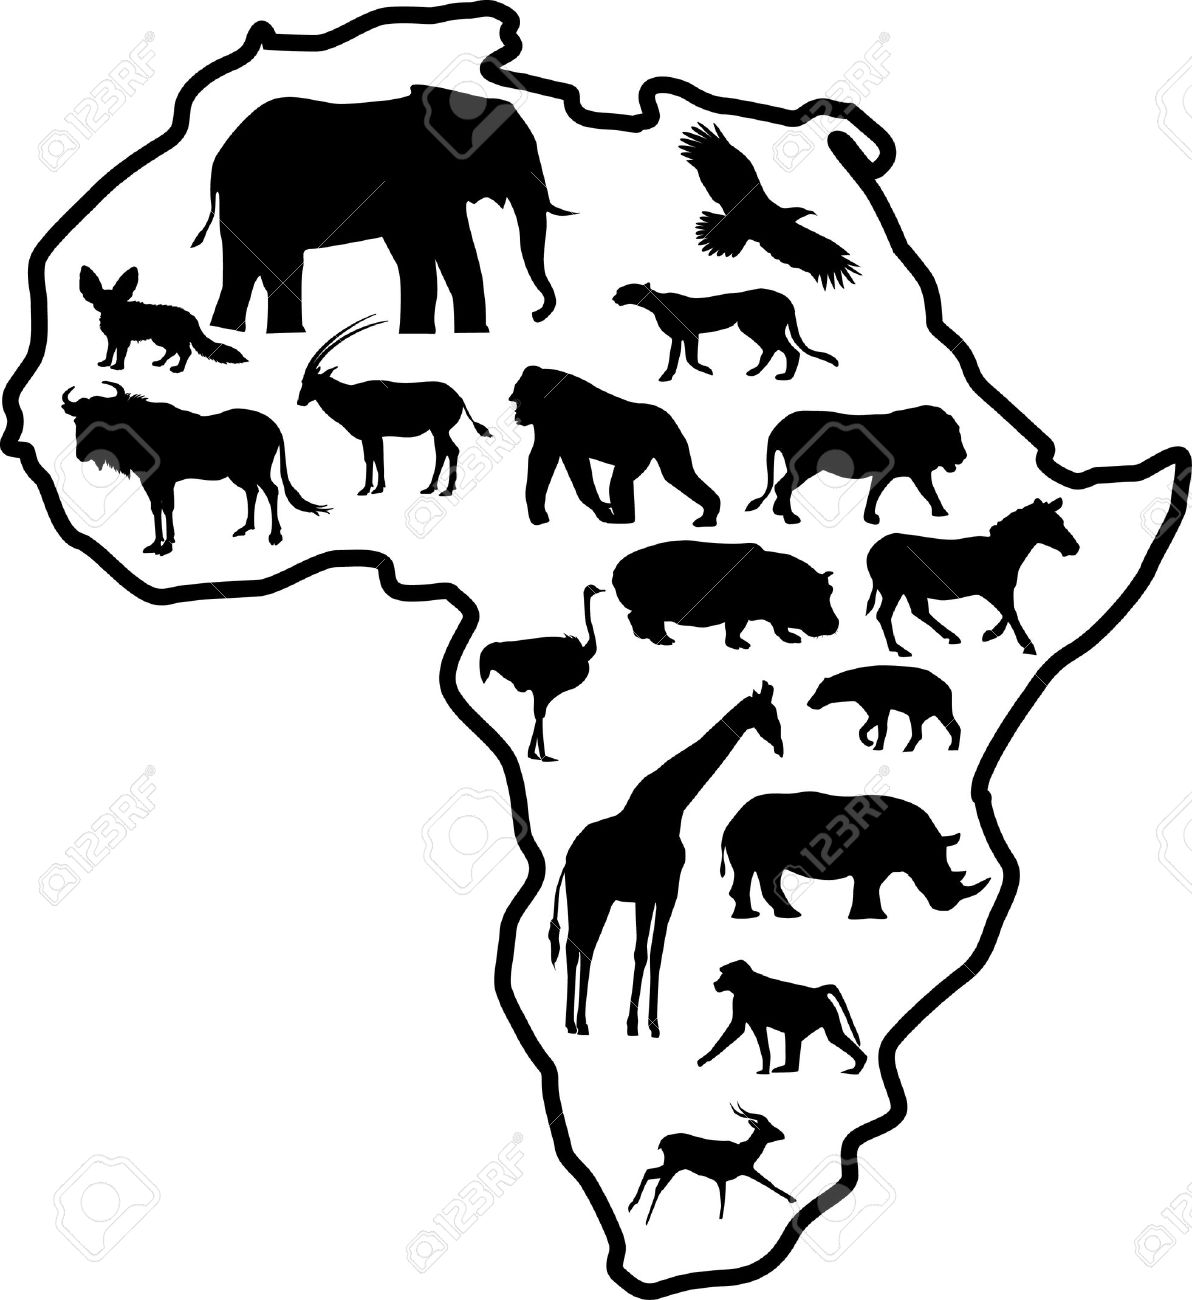 collection of animals. African clipart black and white